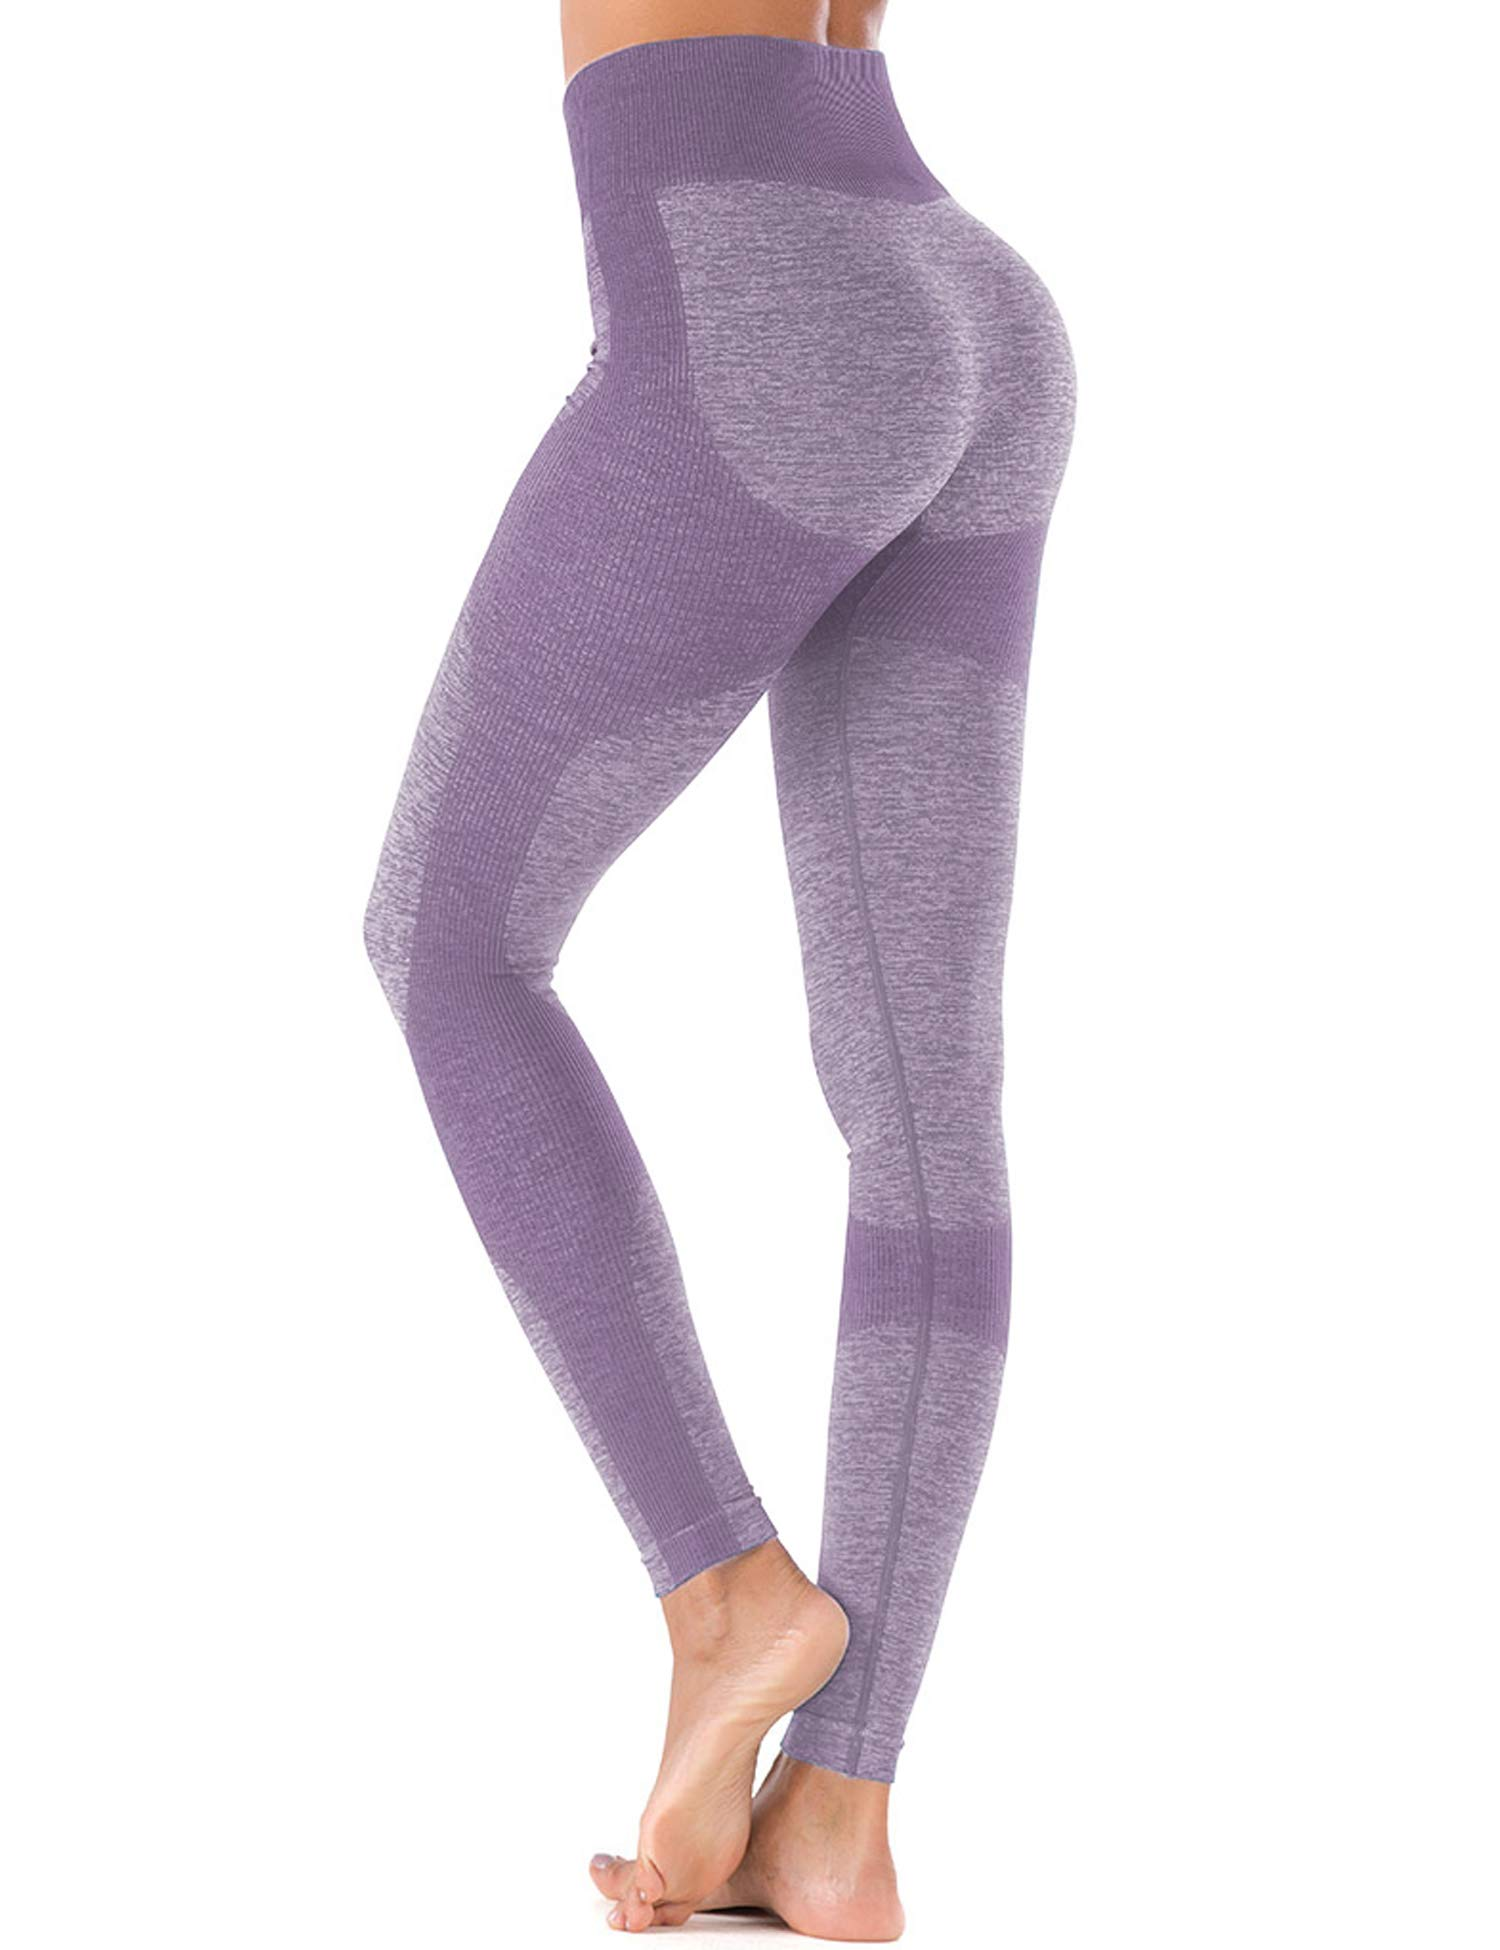 Yoga Pants Extra Soft Leggings for Women Non See-Through High Waist Workout Leggings Purple L by ZHENWEI